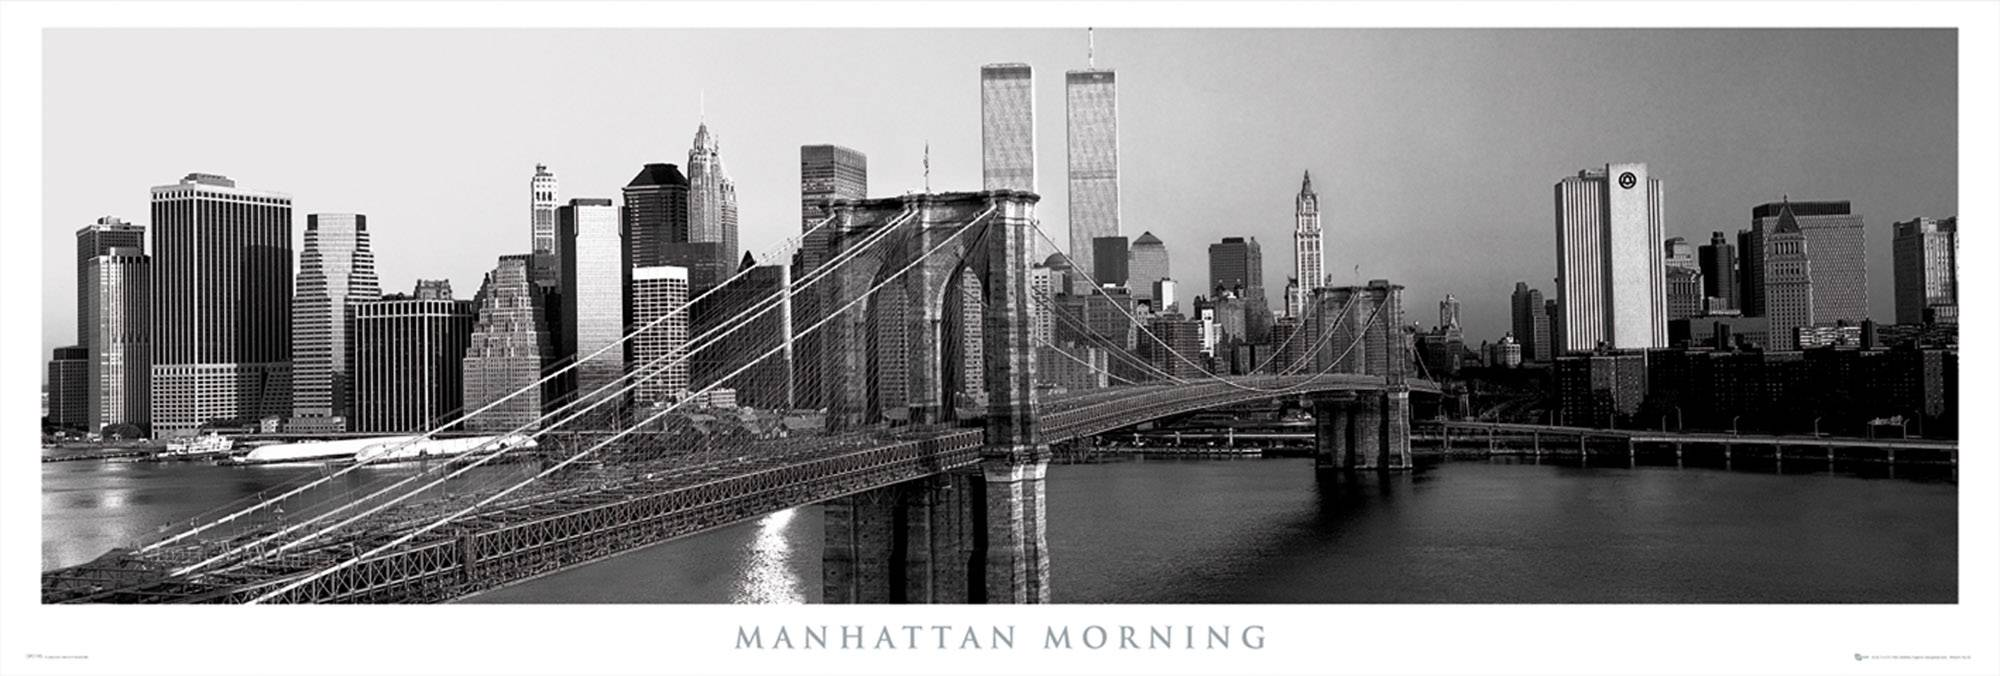 New York Manhattan Morning Door Poster